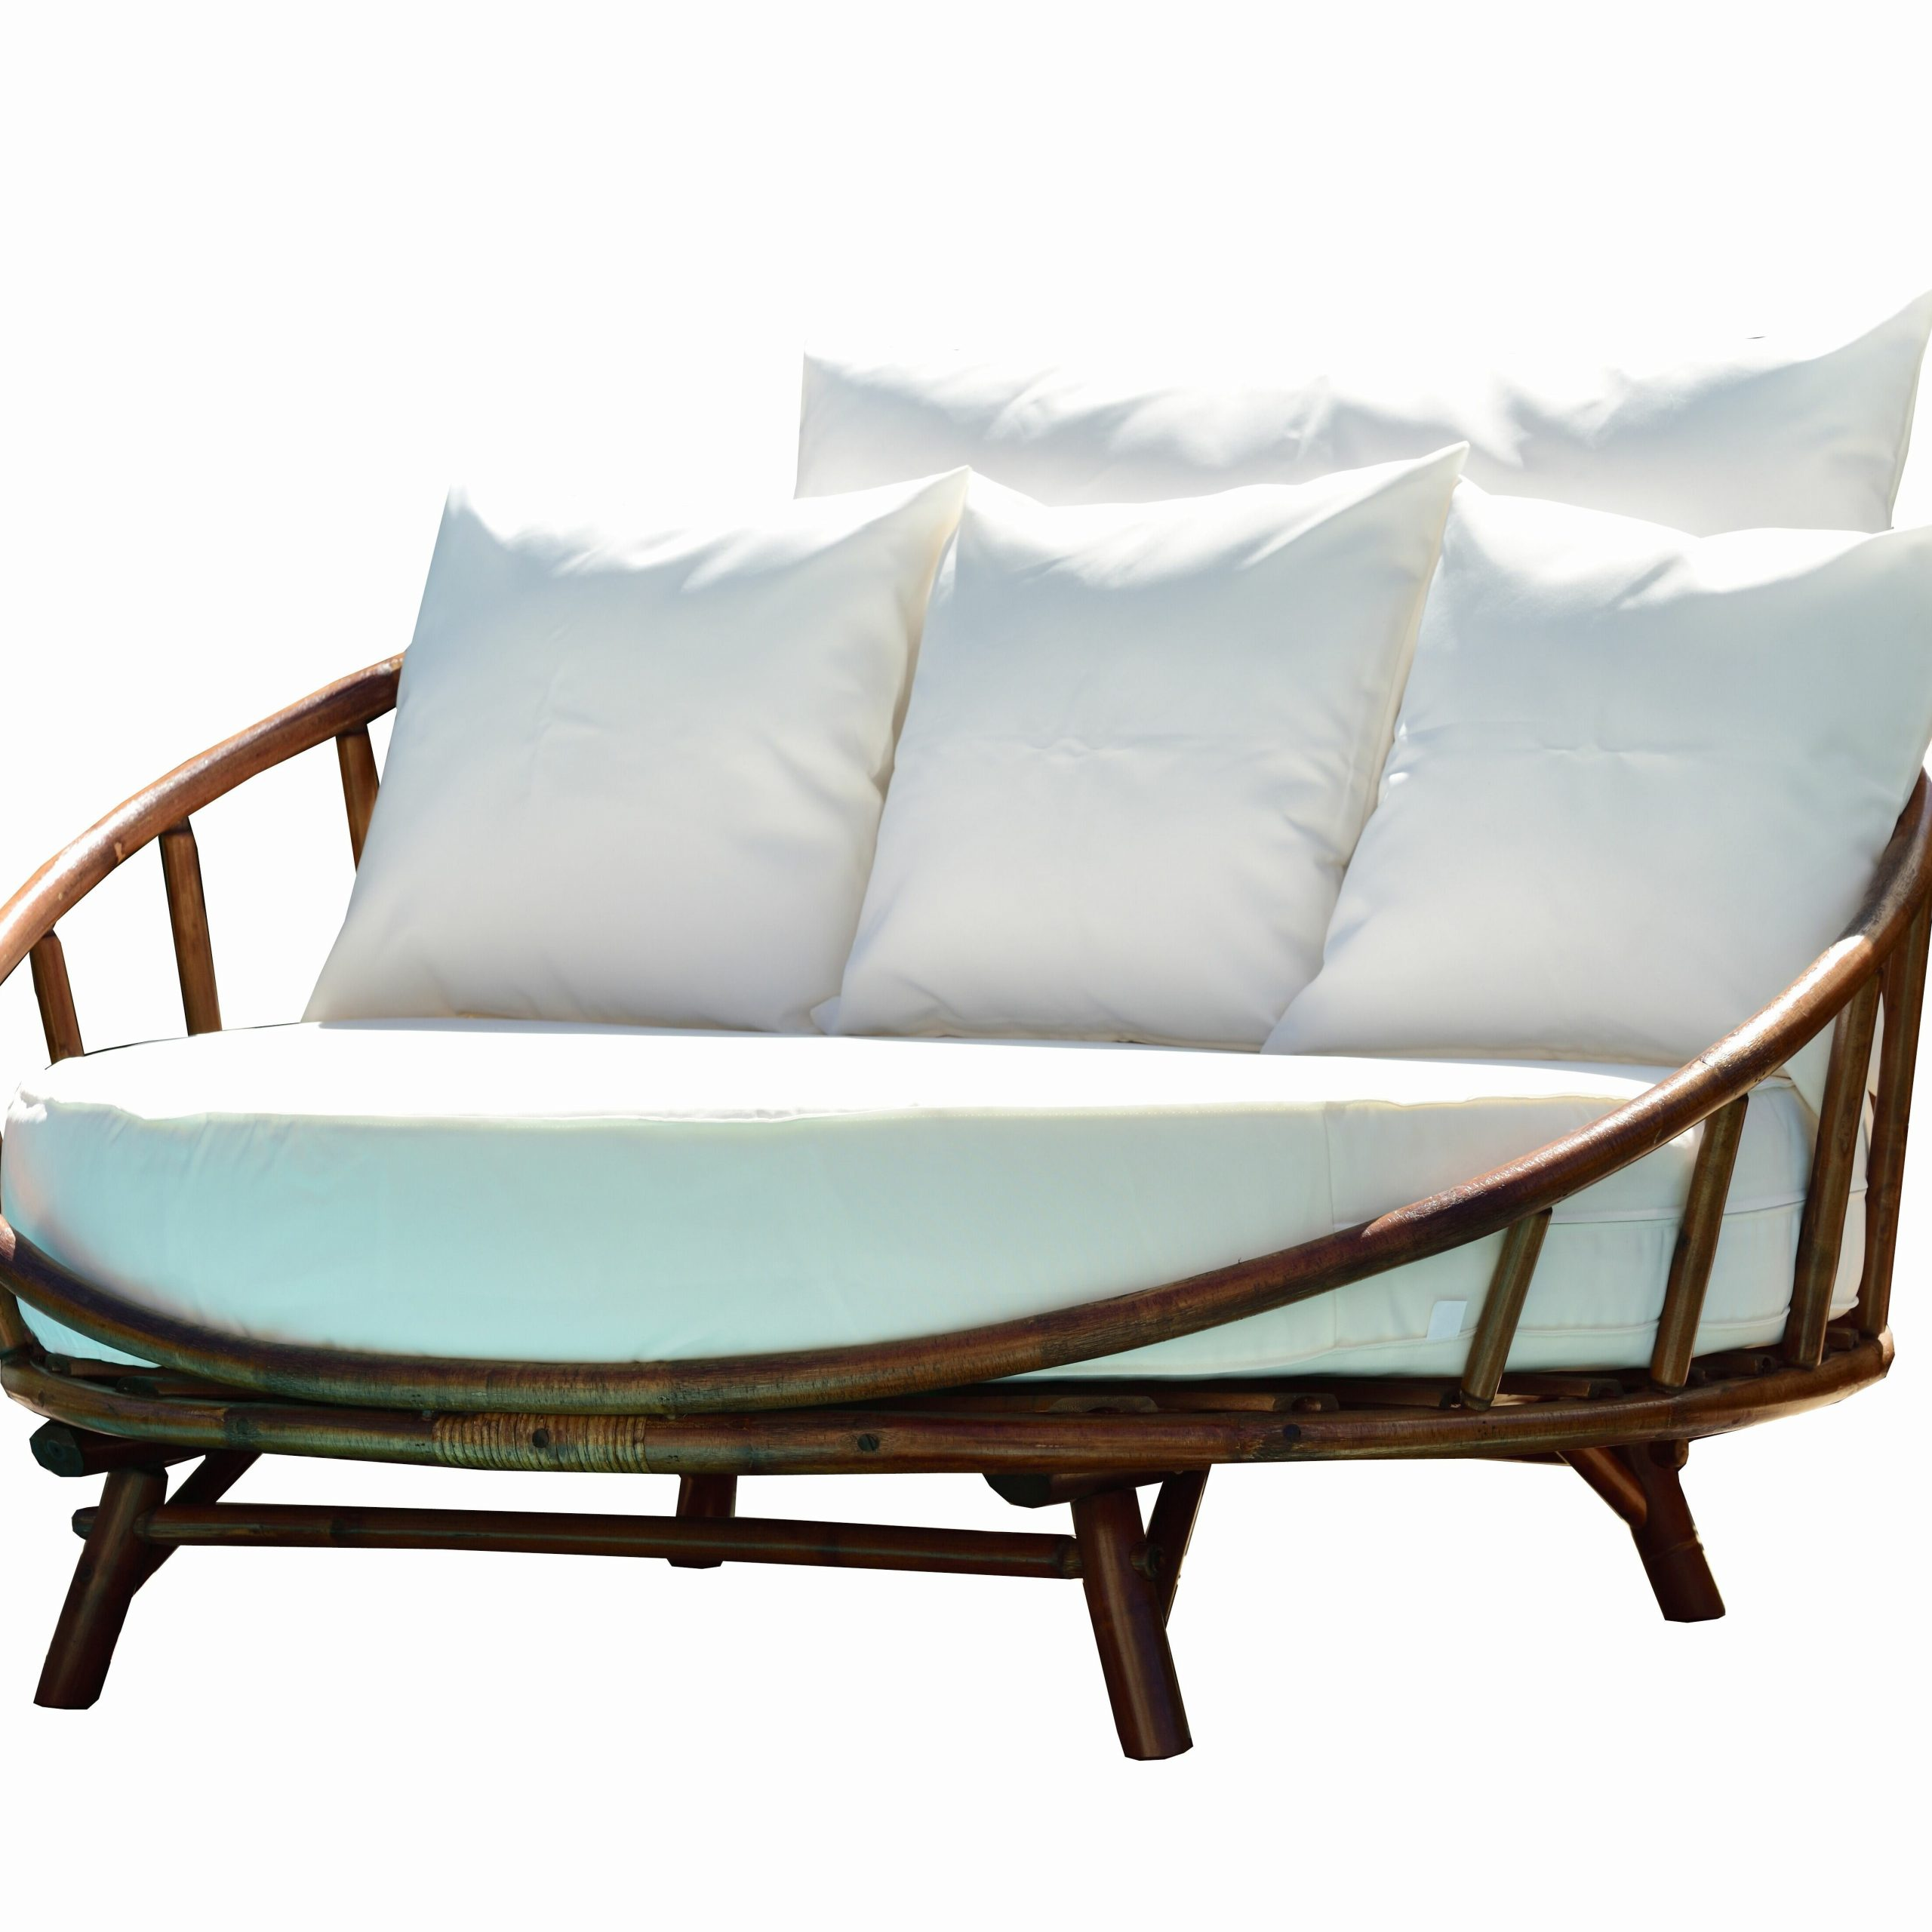 Landis Loveseats With Cushions Intended For Well Known Bayou Breeze Olu Bamboo Large Round Patio Daybed With Cushions (View 22 of 25)